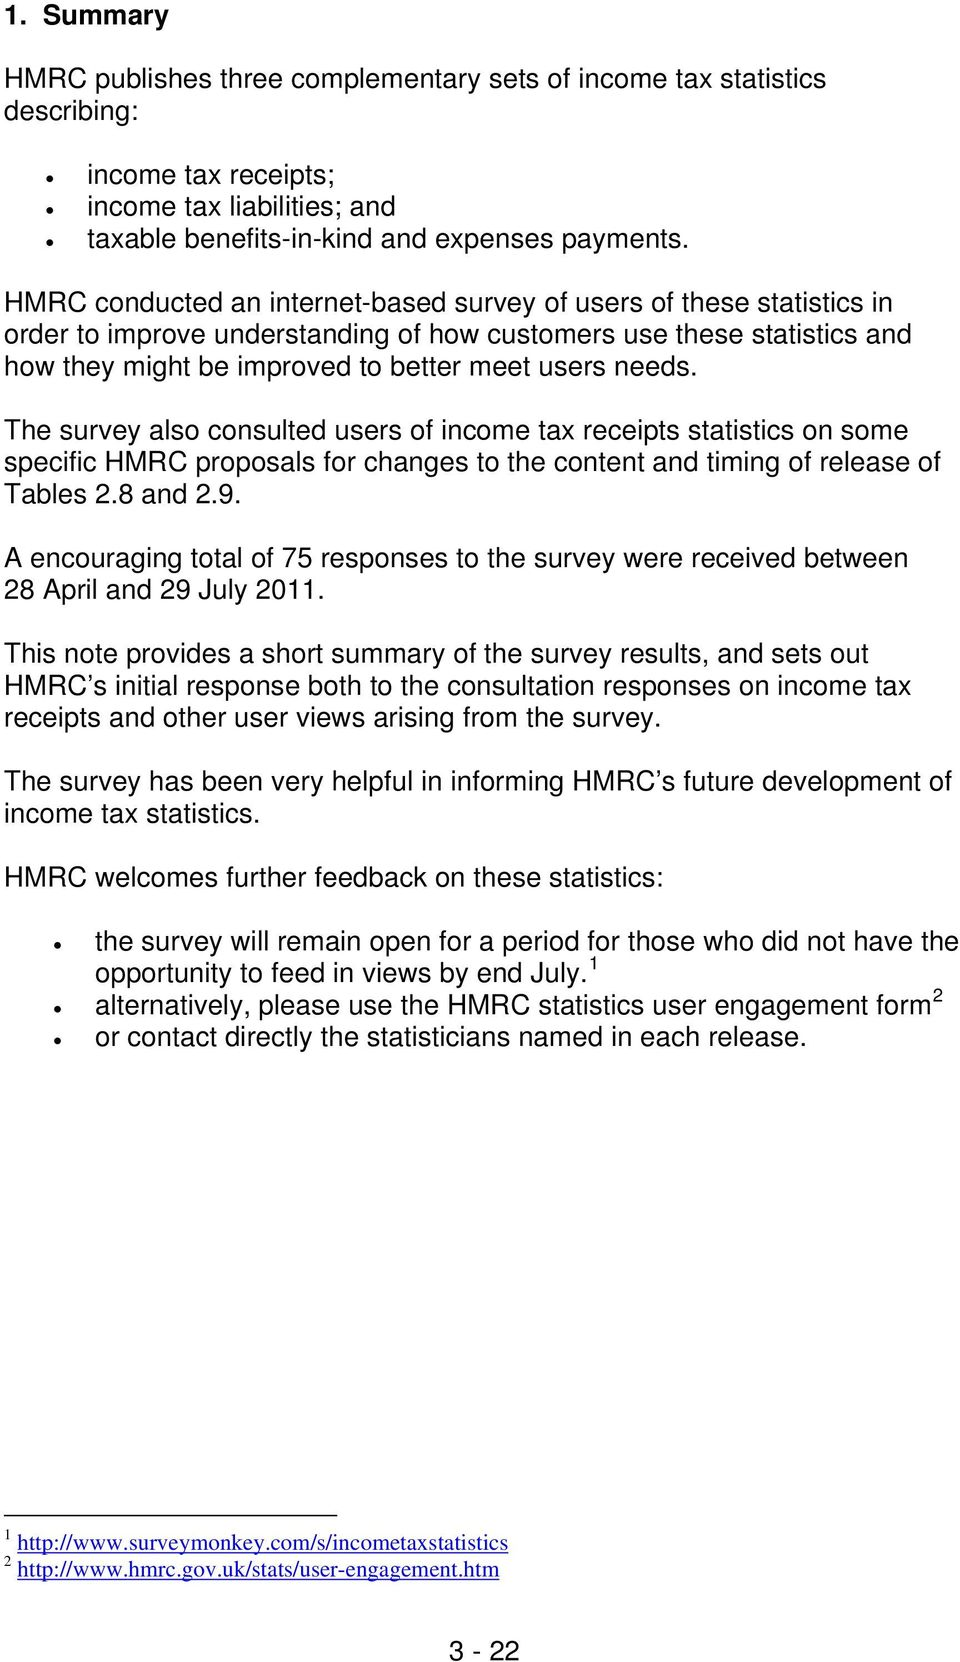 The survey also consulted users of income tax receipts statistics on some specific HMRC proposals for changes to the content and timing of release of Tables 2.8 and 2.9.